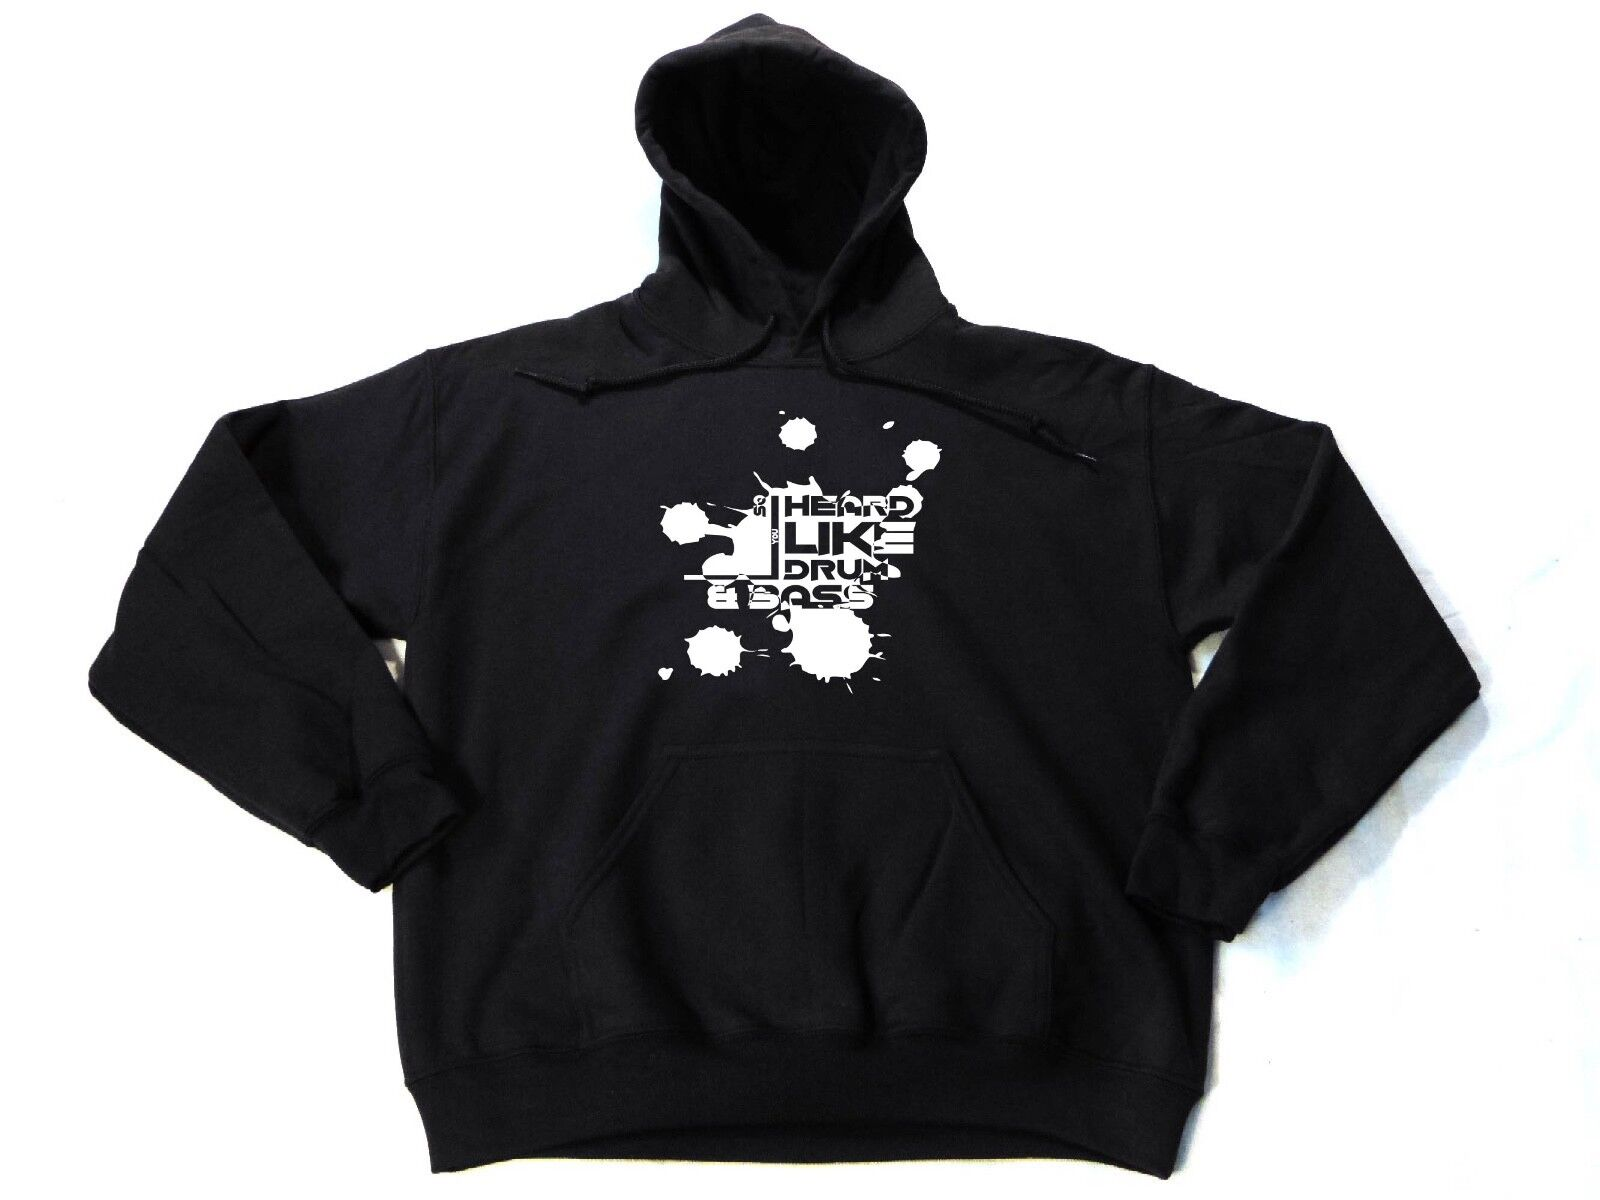 WARM HOODIES Drum And Bass HANDMADE Music Festival Party Rave Clothes Gifts